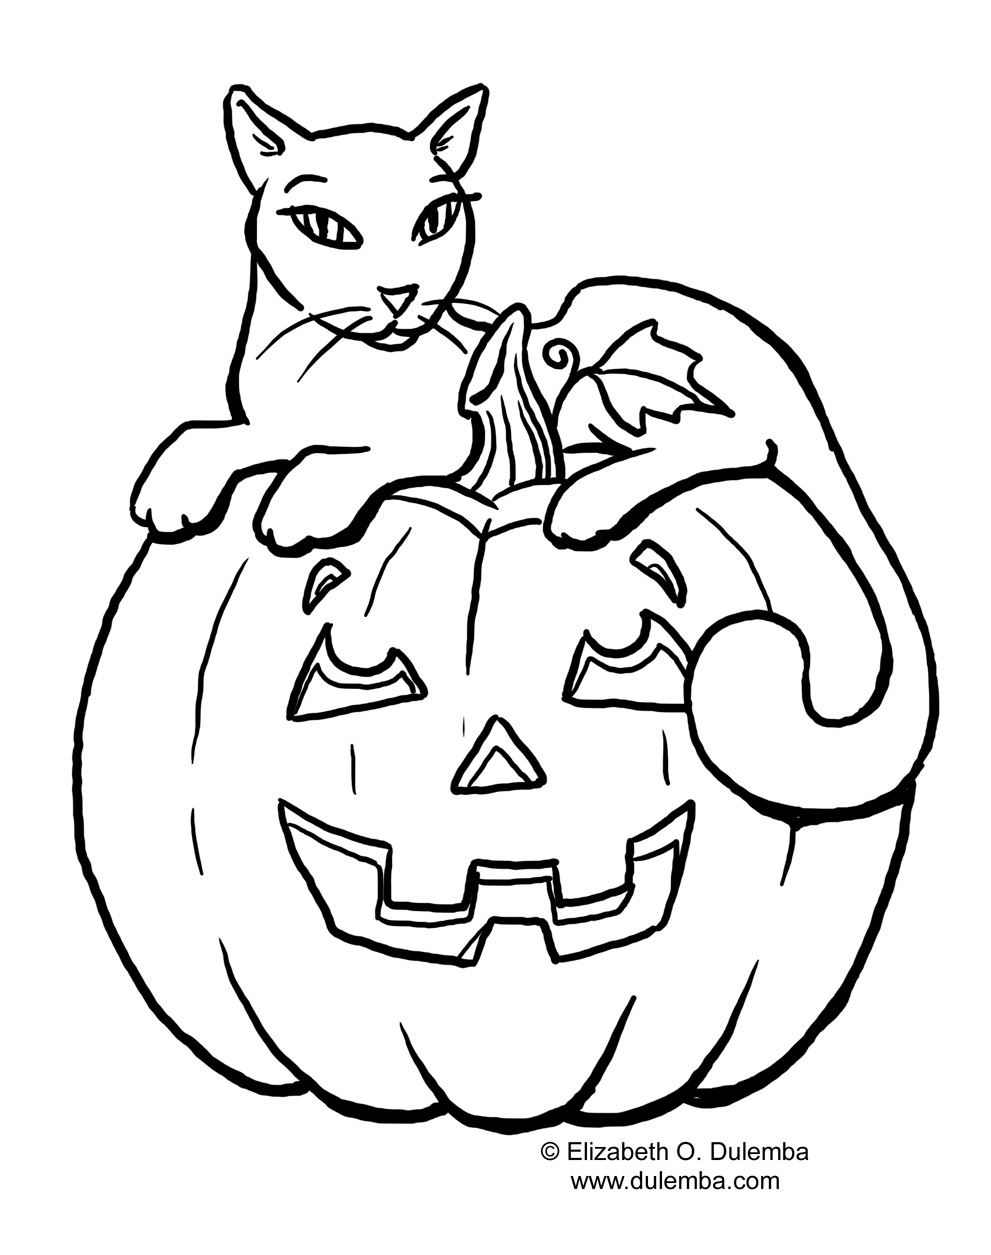 halloween coloring pages pumpkin free printable pumpkin coloring pages for kids halloween coloring pumpkin pages